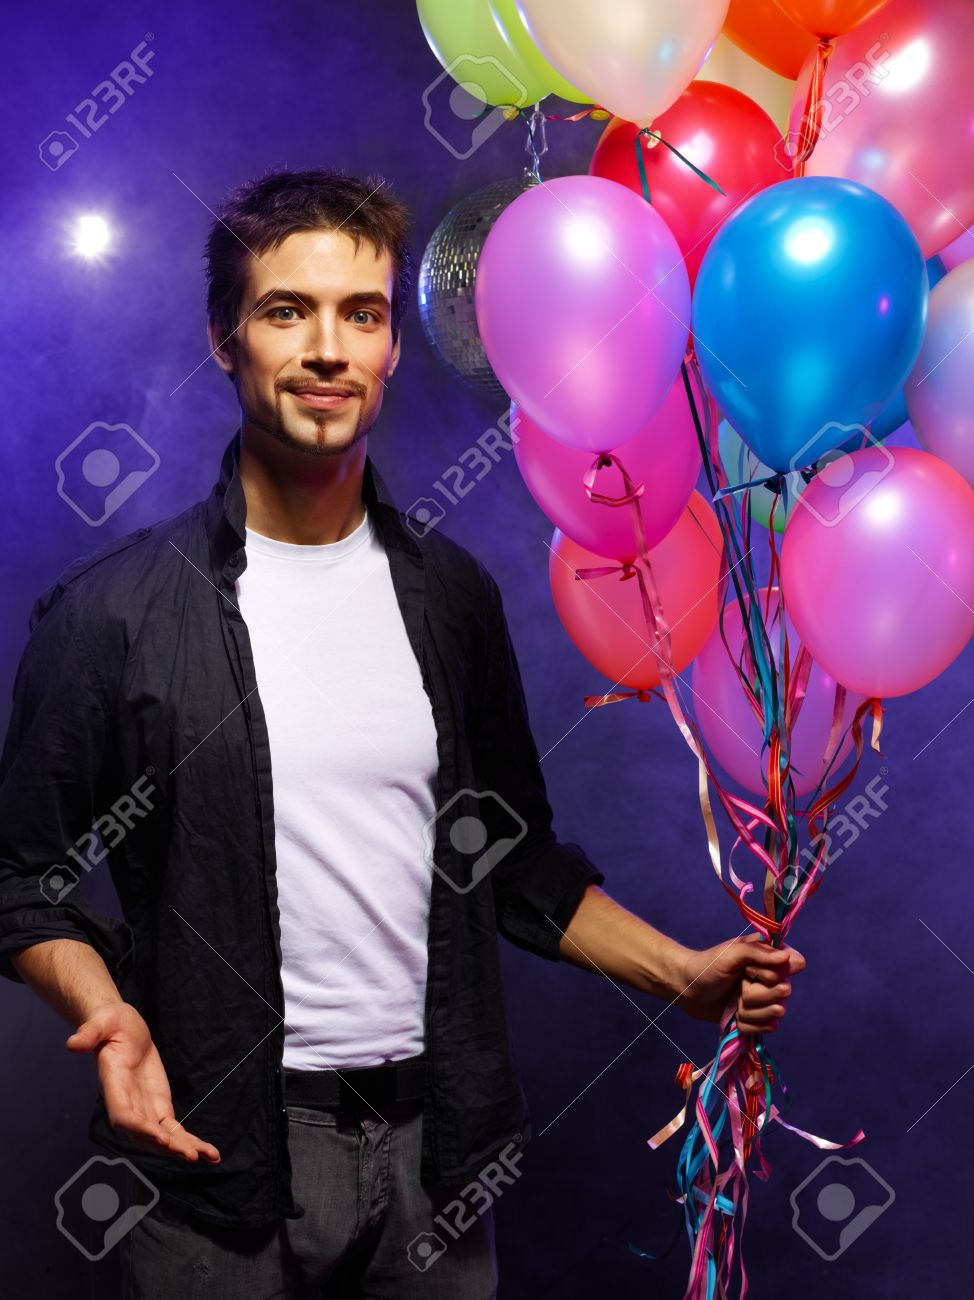 Handsome Man Holding Bunch Of Air Balloons Stock Photo